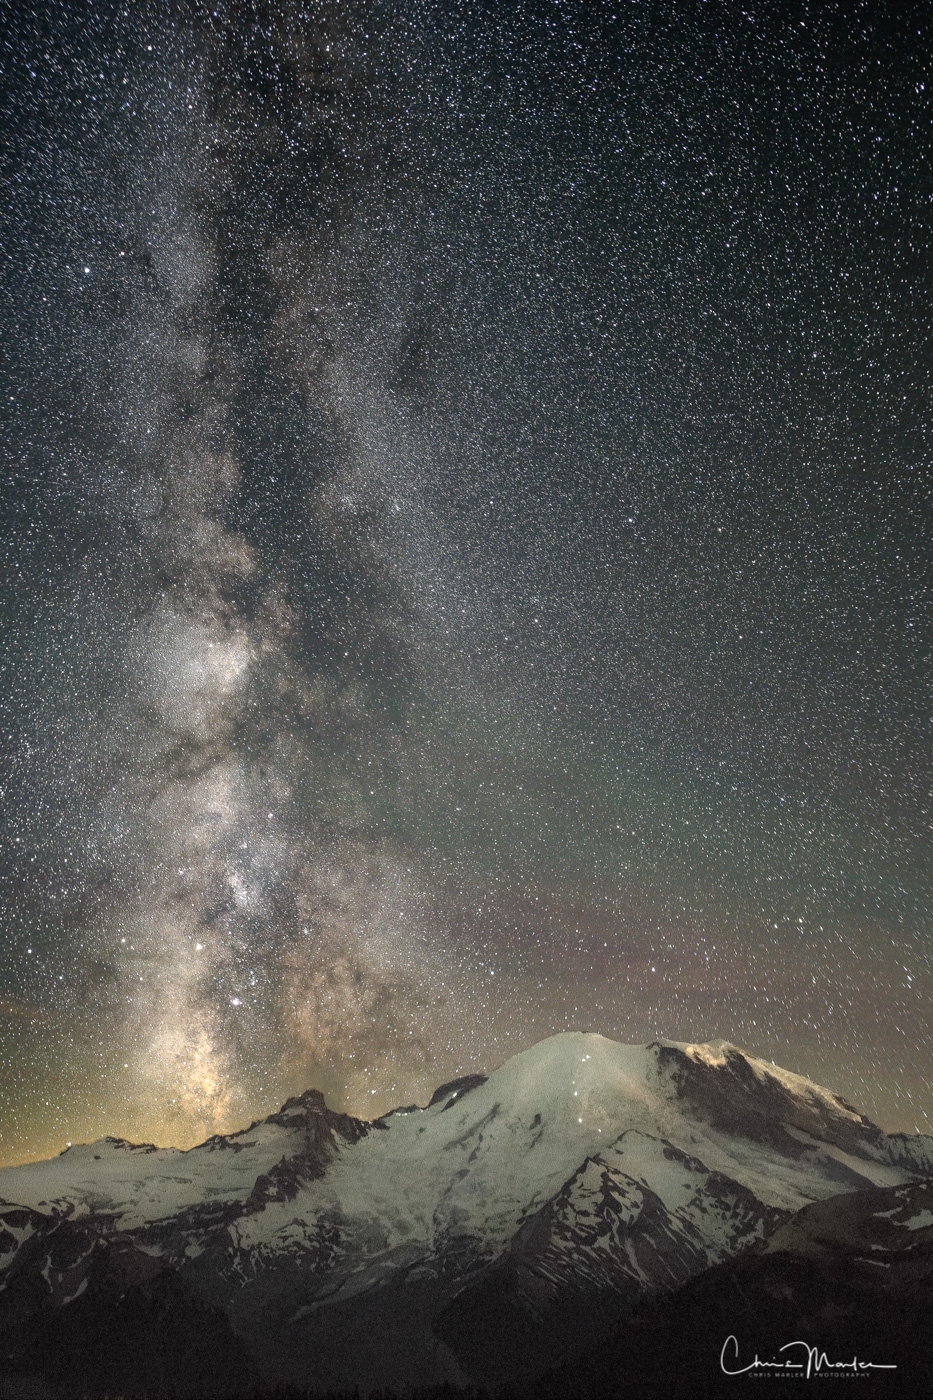 The Milky Way over Mt. Rainier is an incredible sight.  The galactic core is so vibrant in this image because the skies were...